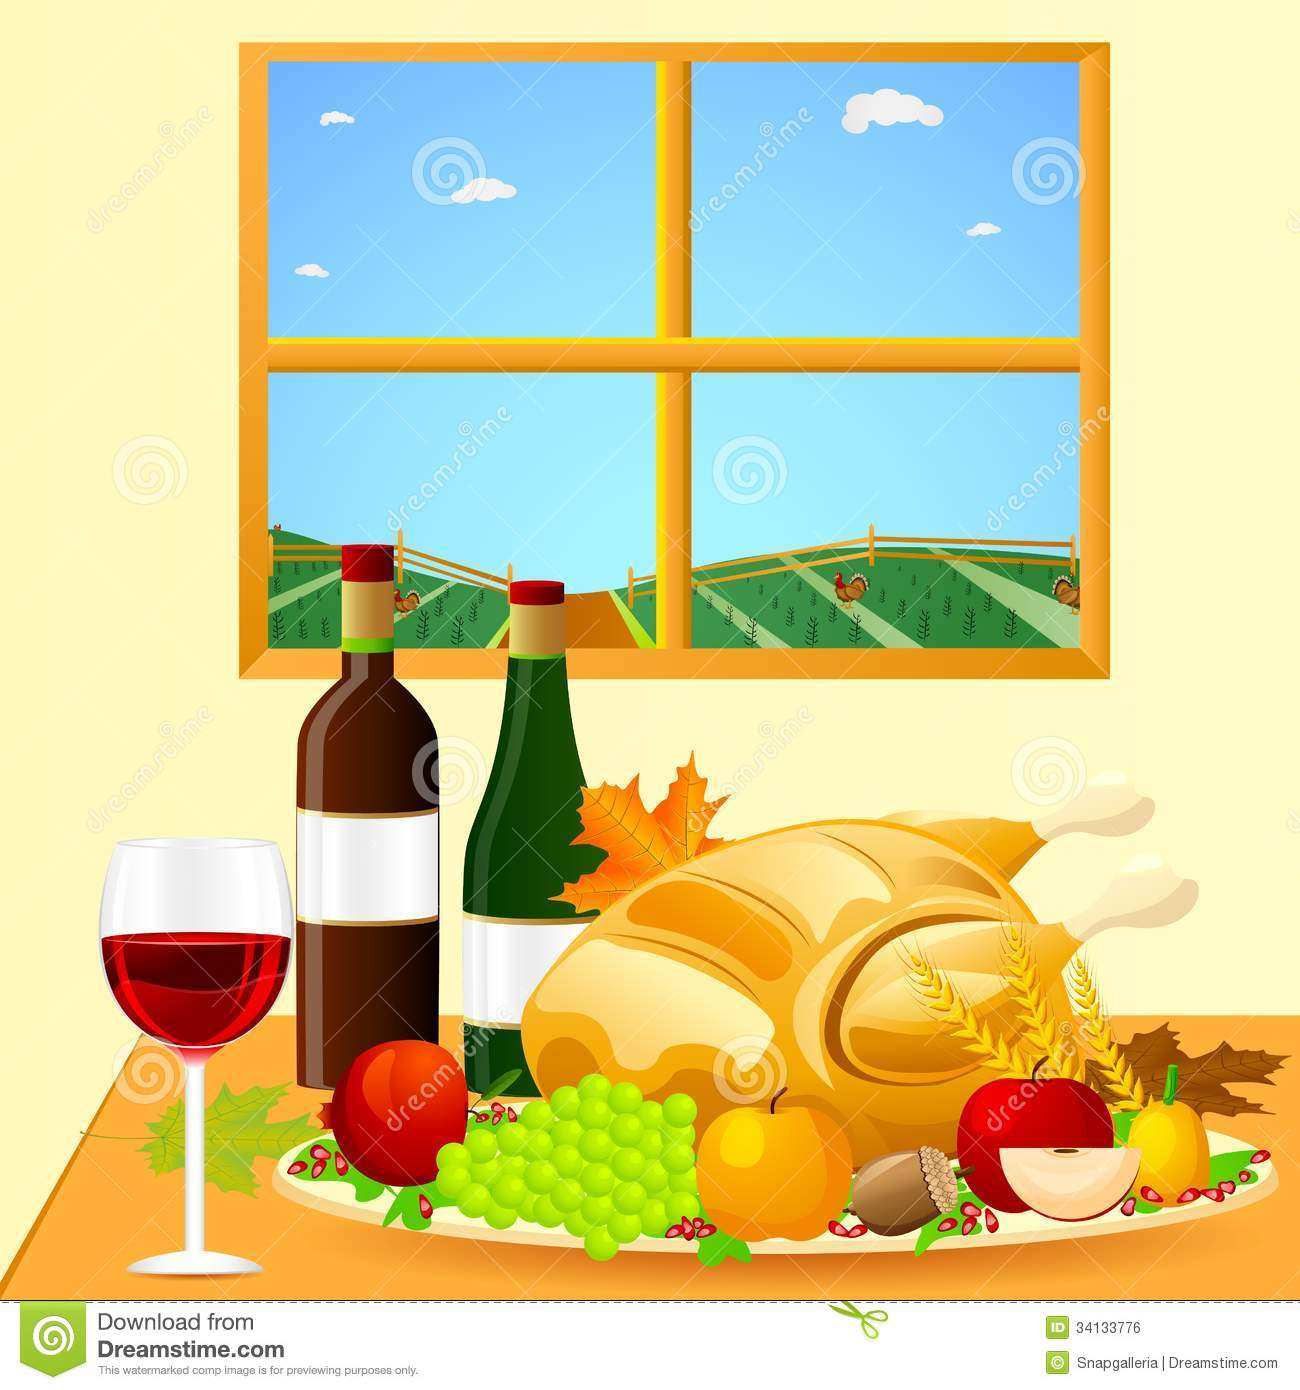 Thanksgiving dinner images pictures